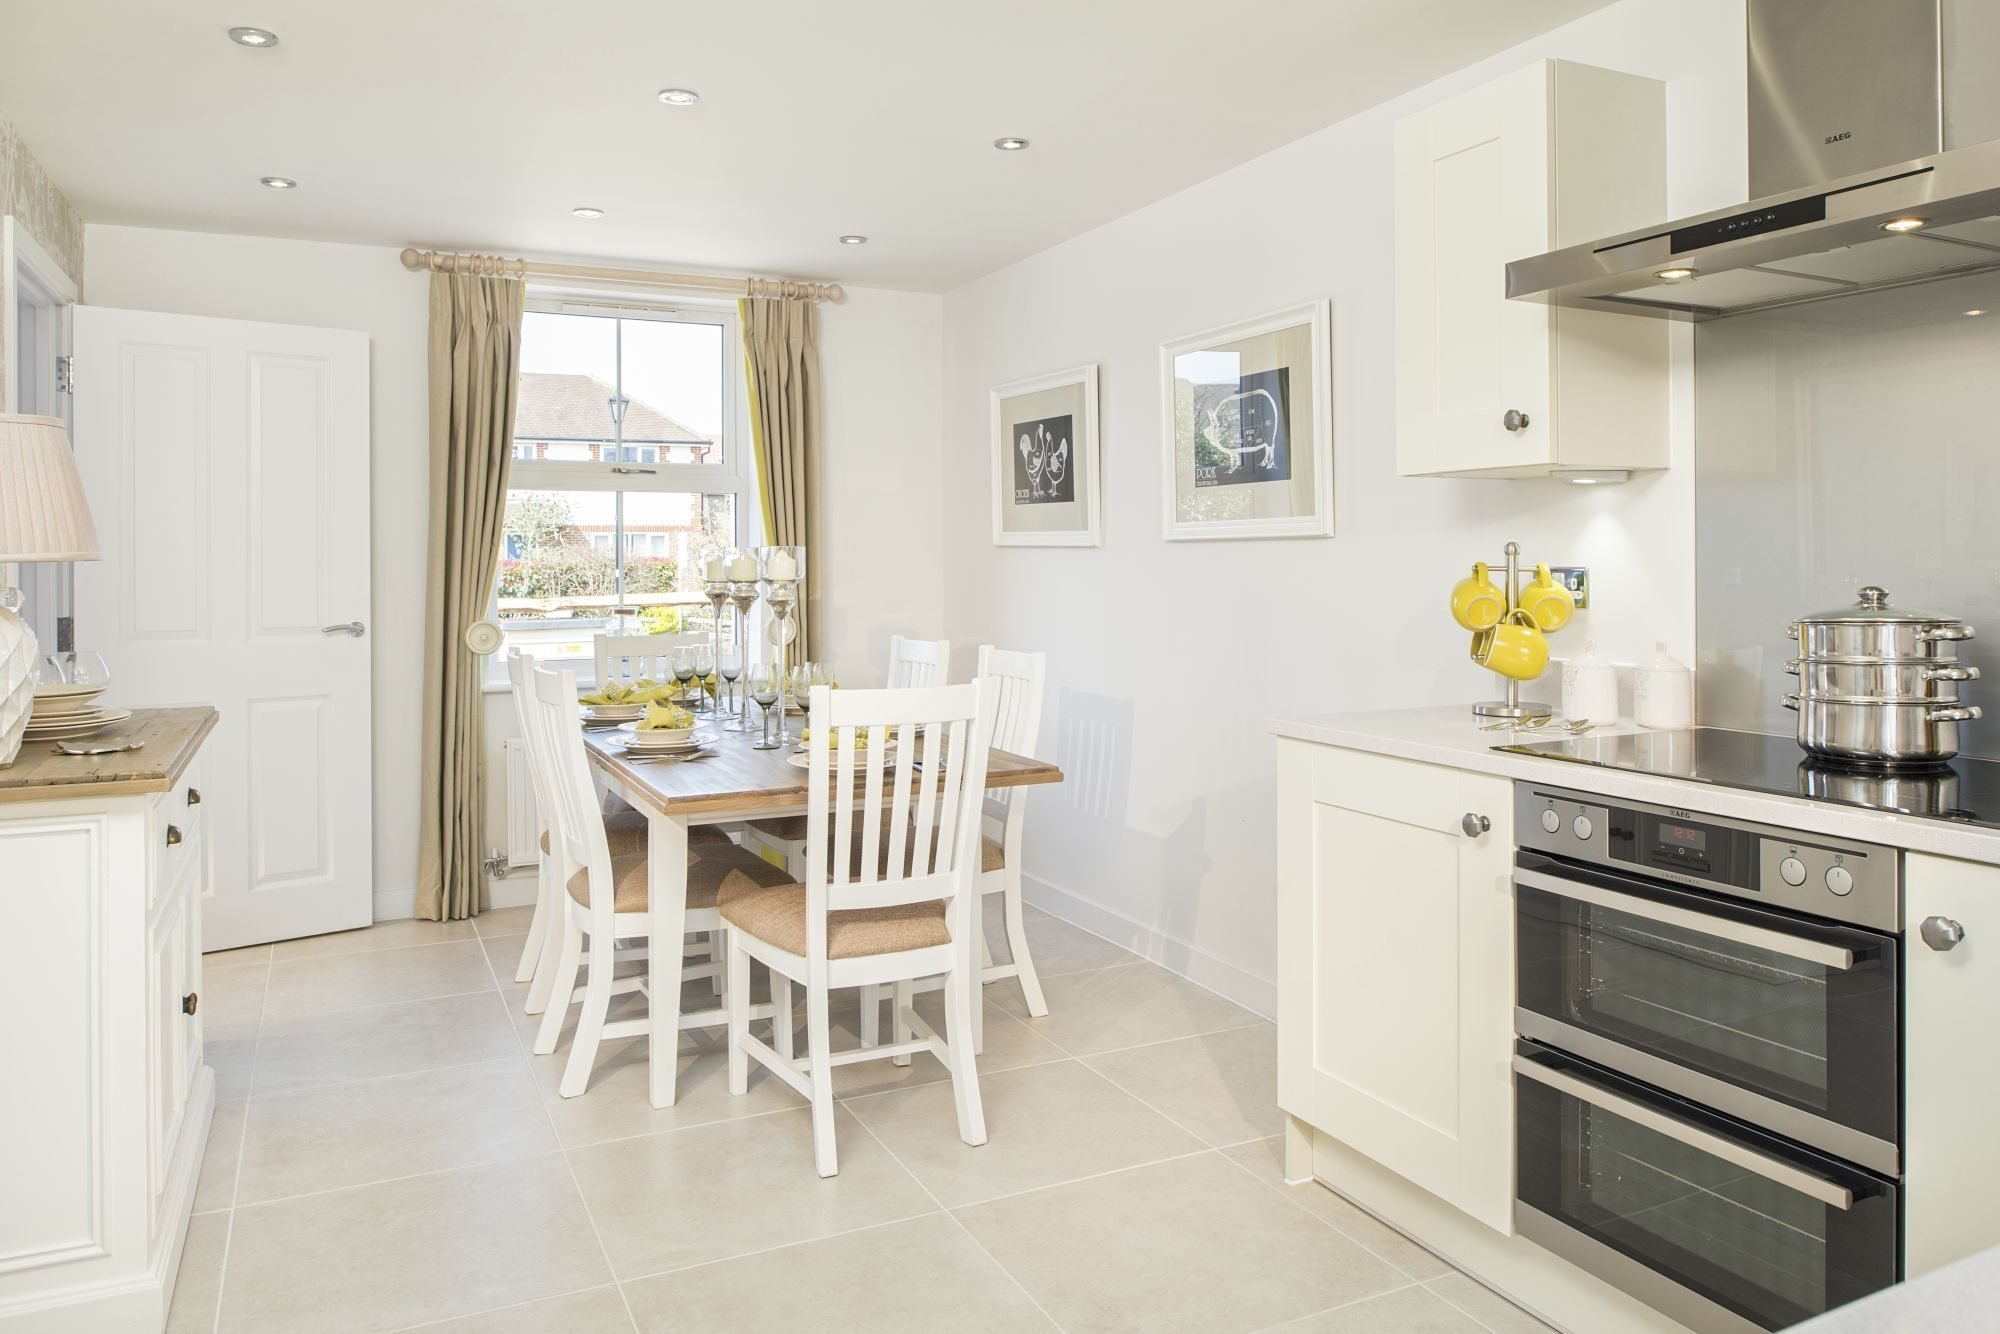 Plot 270, Clements Gate, NORWICH NR14 7JL - NORWICH - new homes by ...